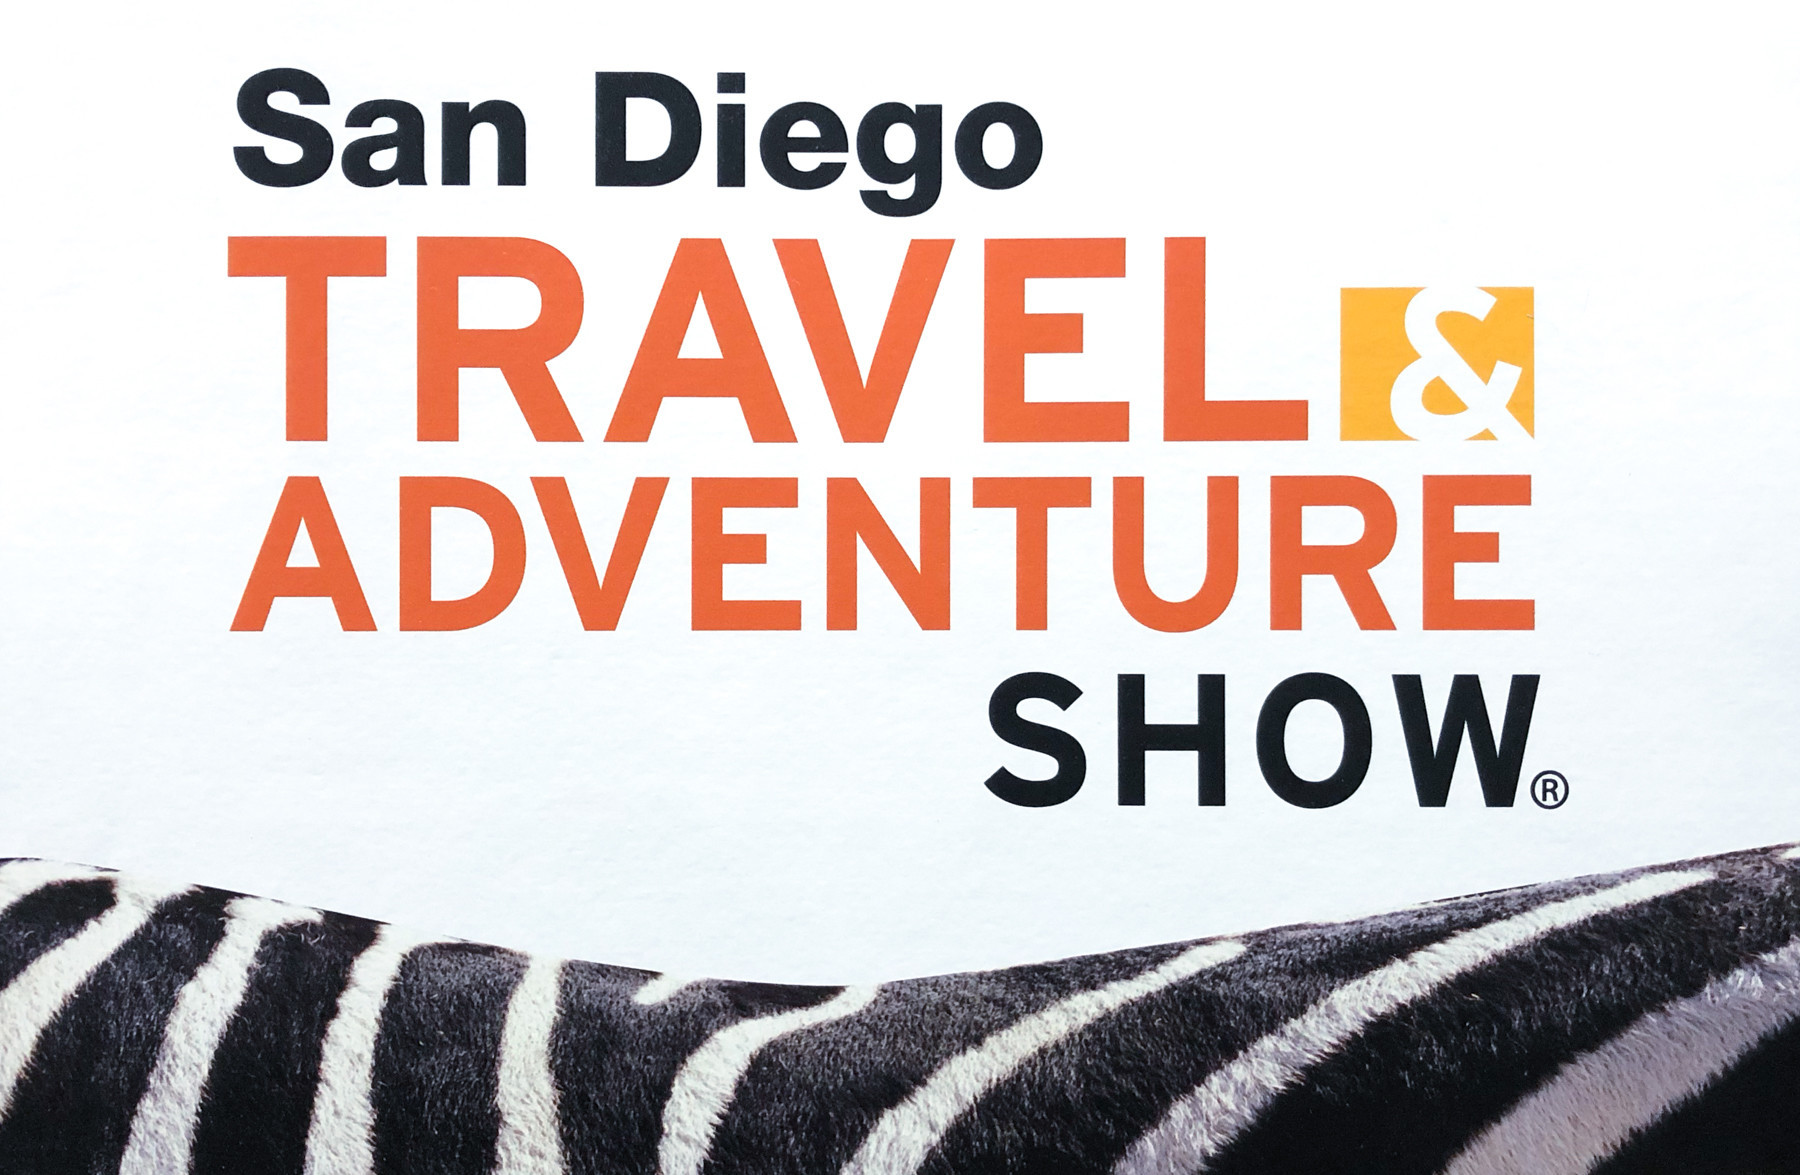 01609a-20180114 San Diego Travel & Adventure Show-San Diego Convention Center-iPhone X